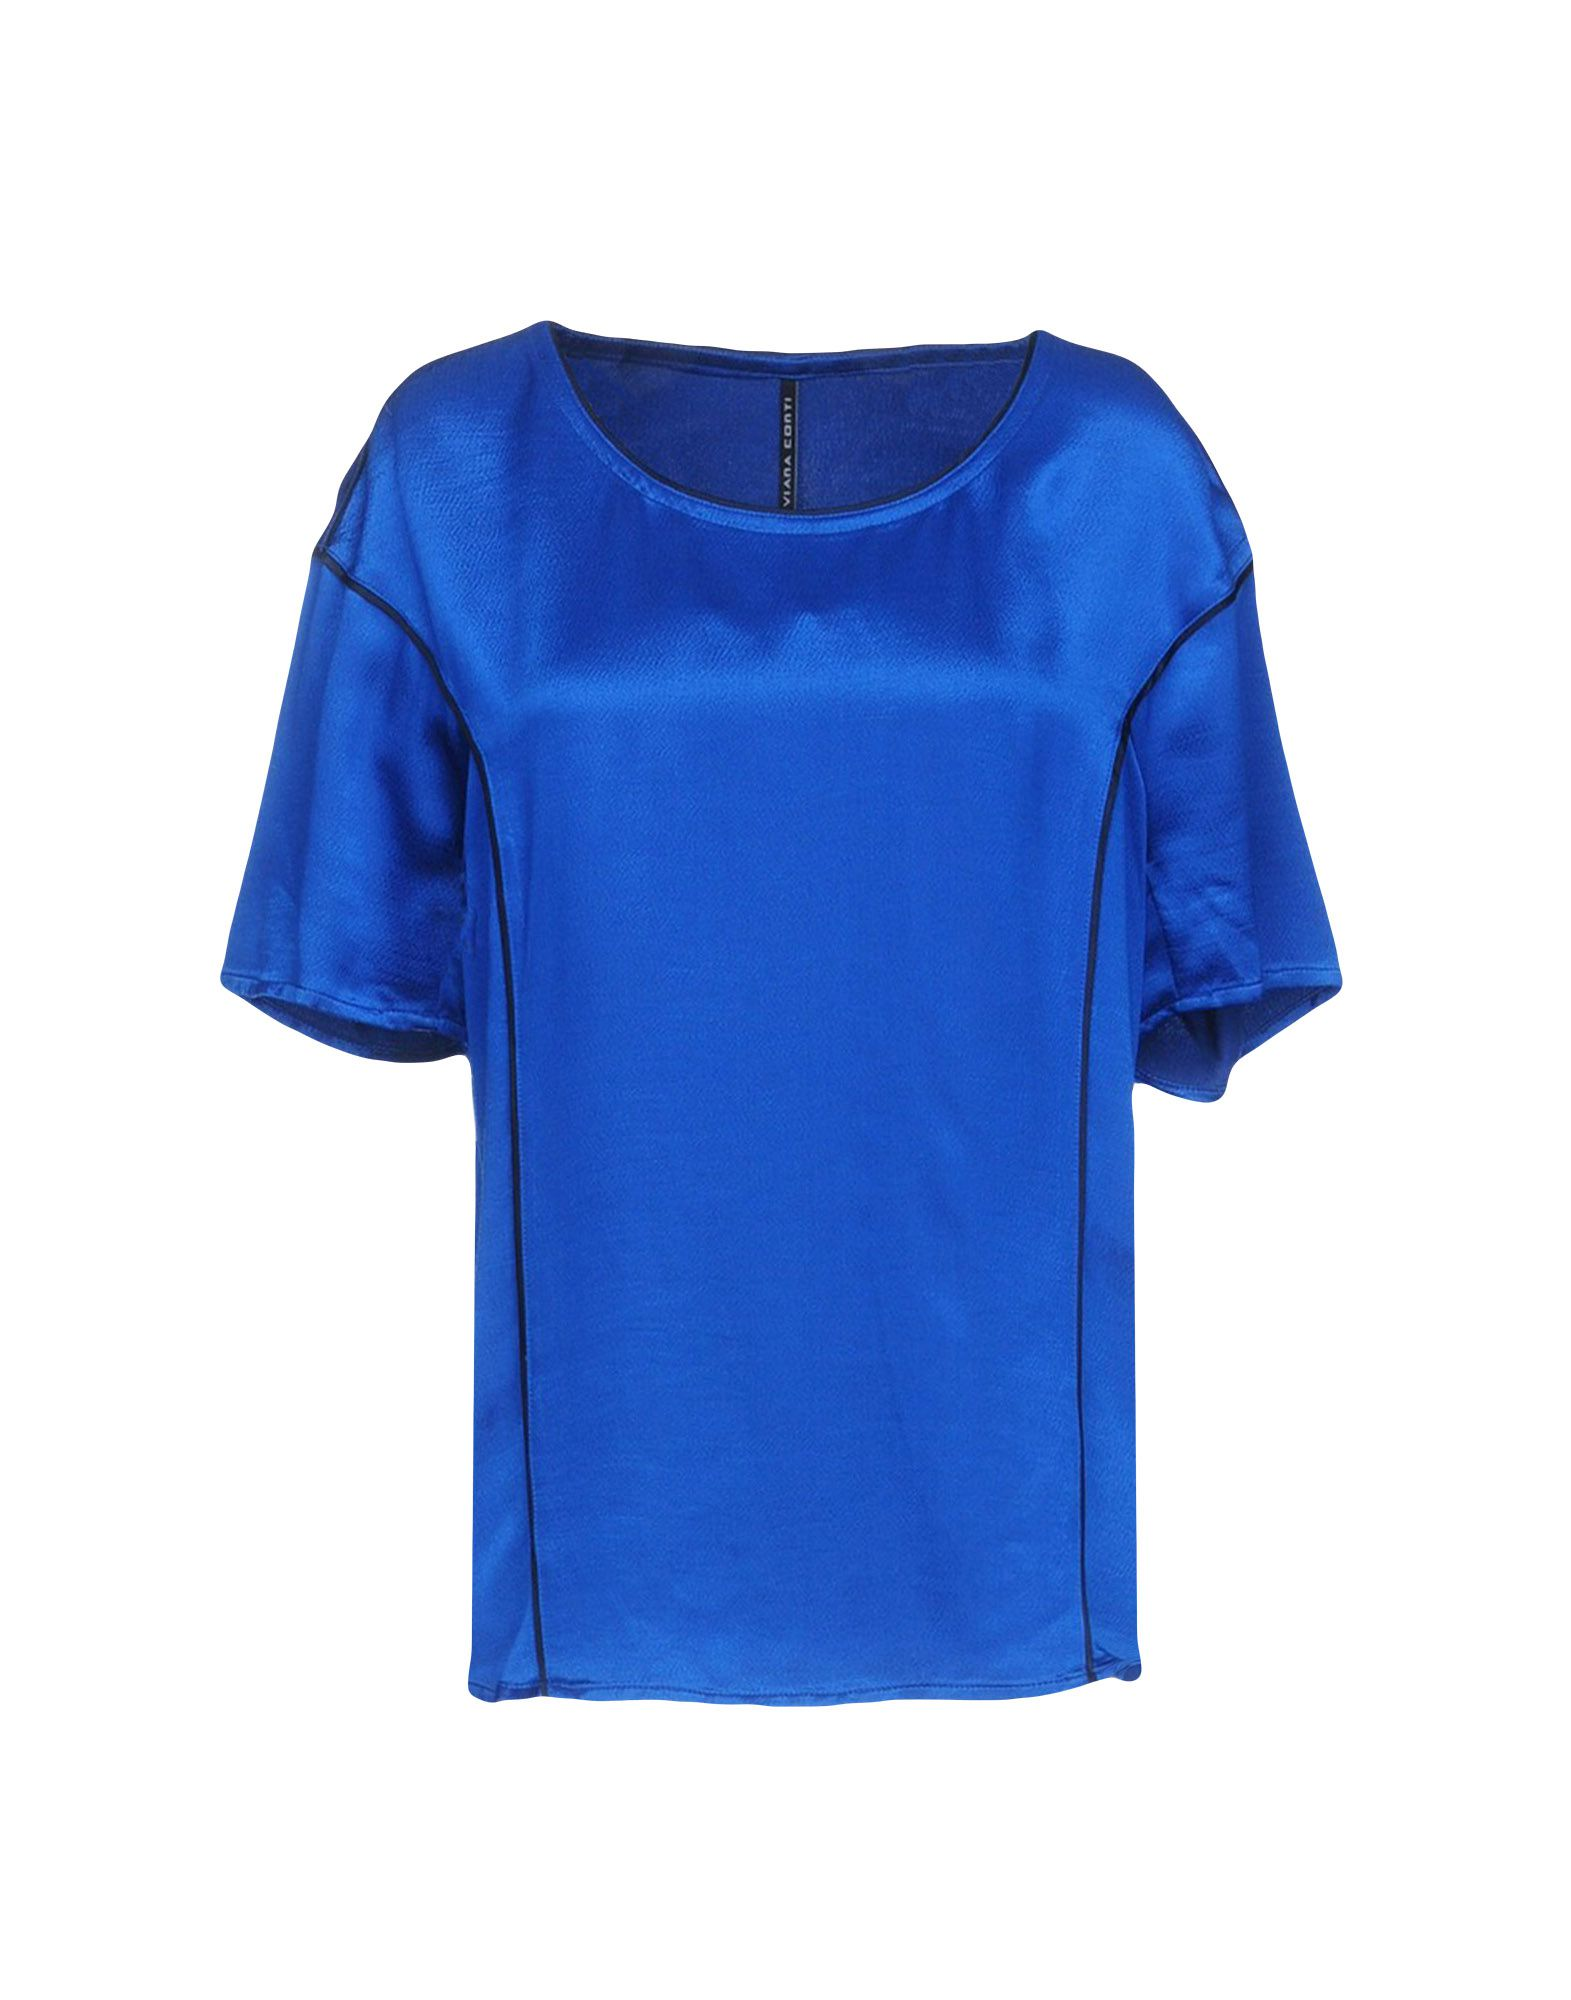 LIVIANA CONTI Blouse in Bright Blue